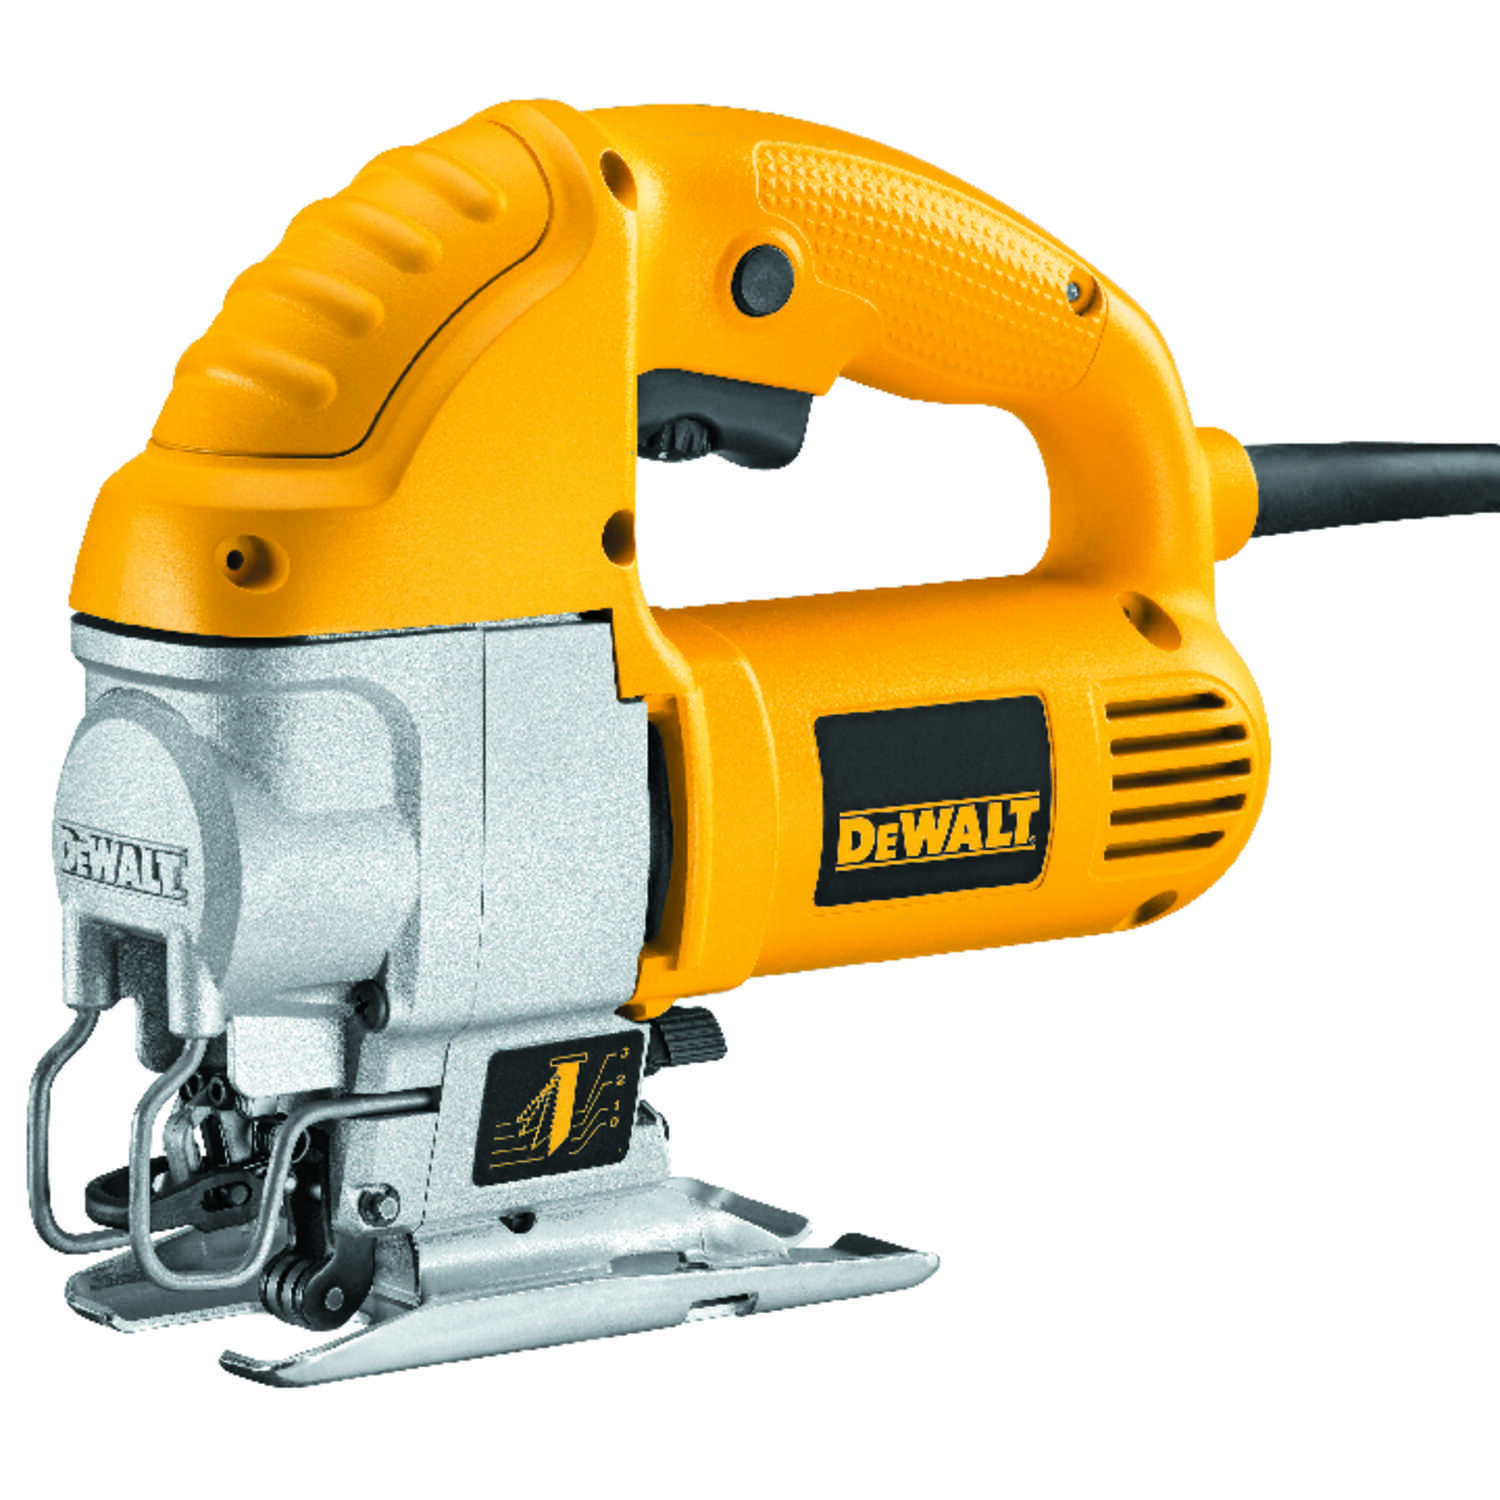 DeWalt  1 in. Corded  Keyless Orbital Jig Saw  Bare Tool  120 volt 5.5 amps 0-3,100 spm